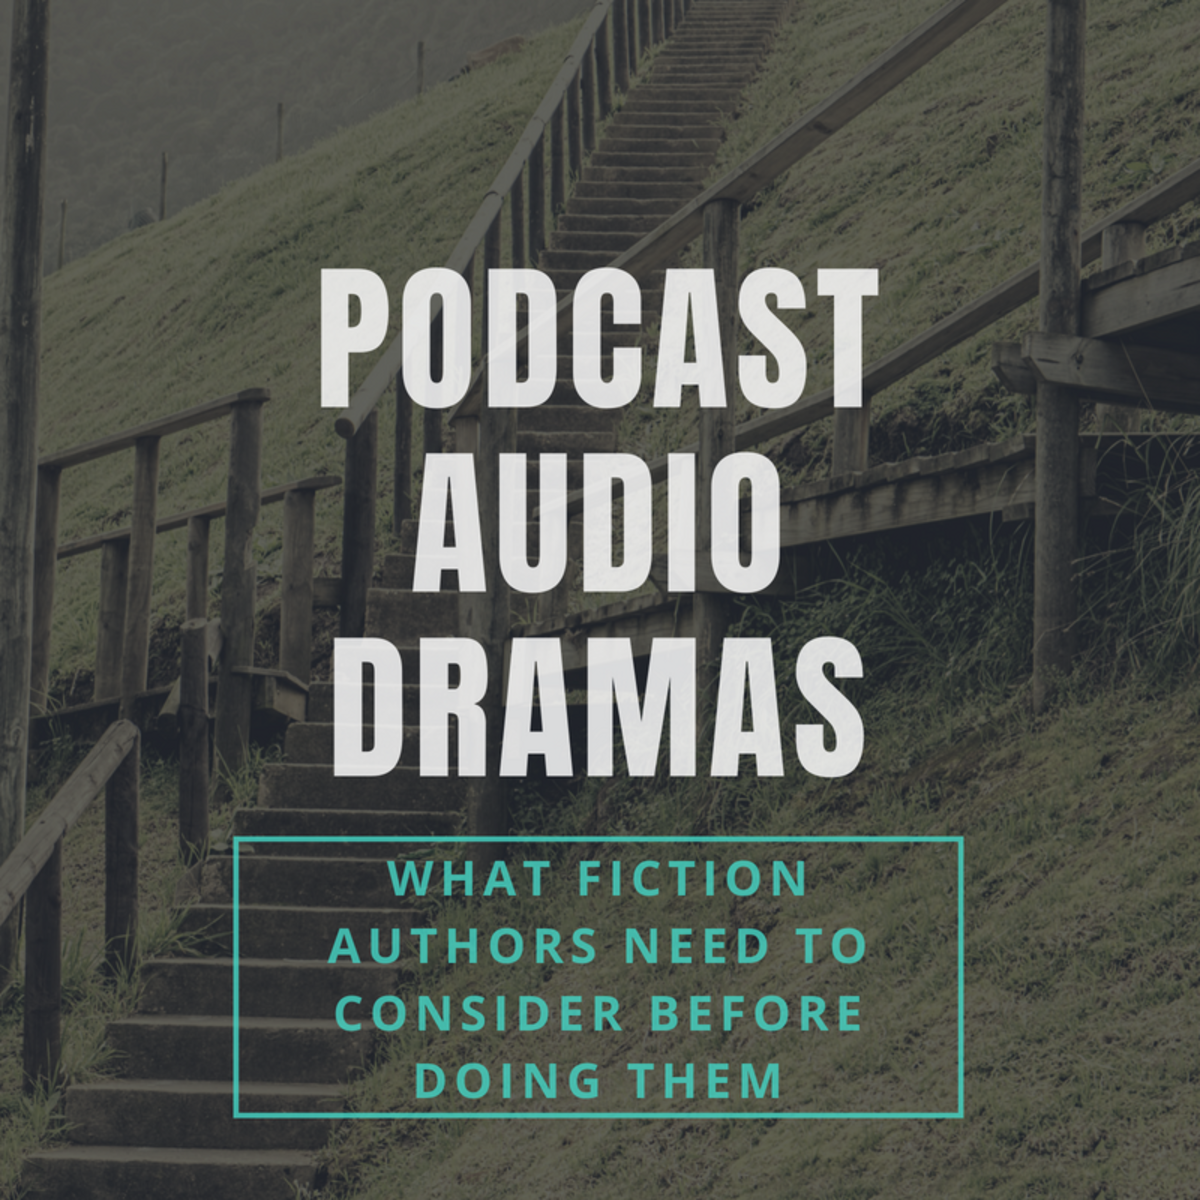 podcast-audio-dramas-what-fiction-authors-need-to-consider